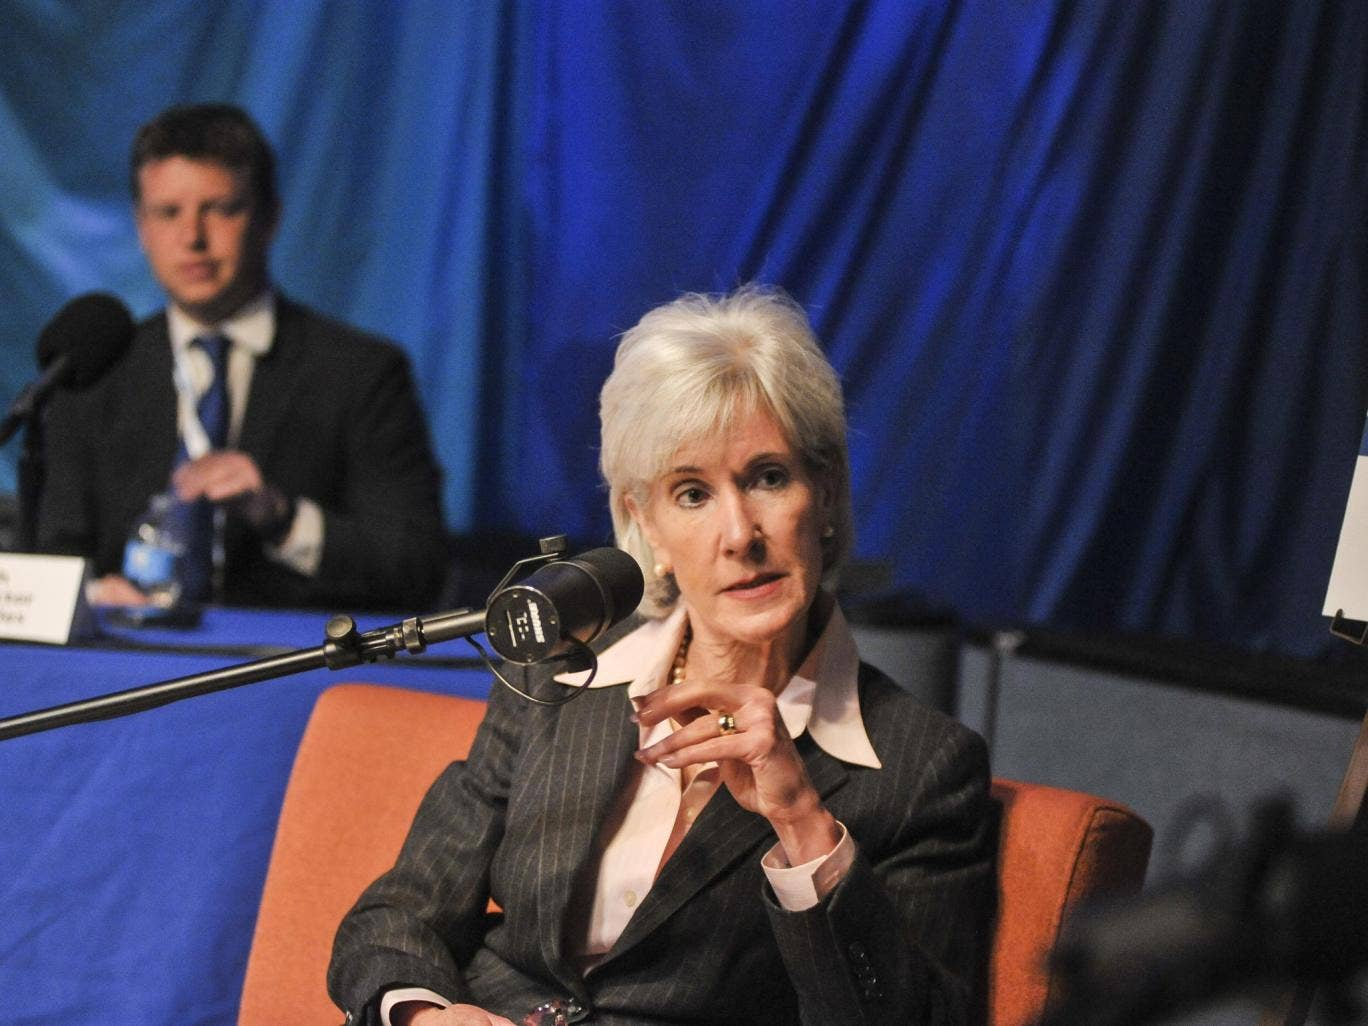 The US health and human services (HHS) secretary Kathleen Sebelius